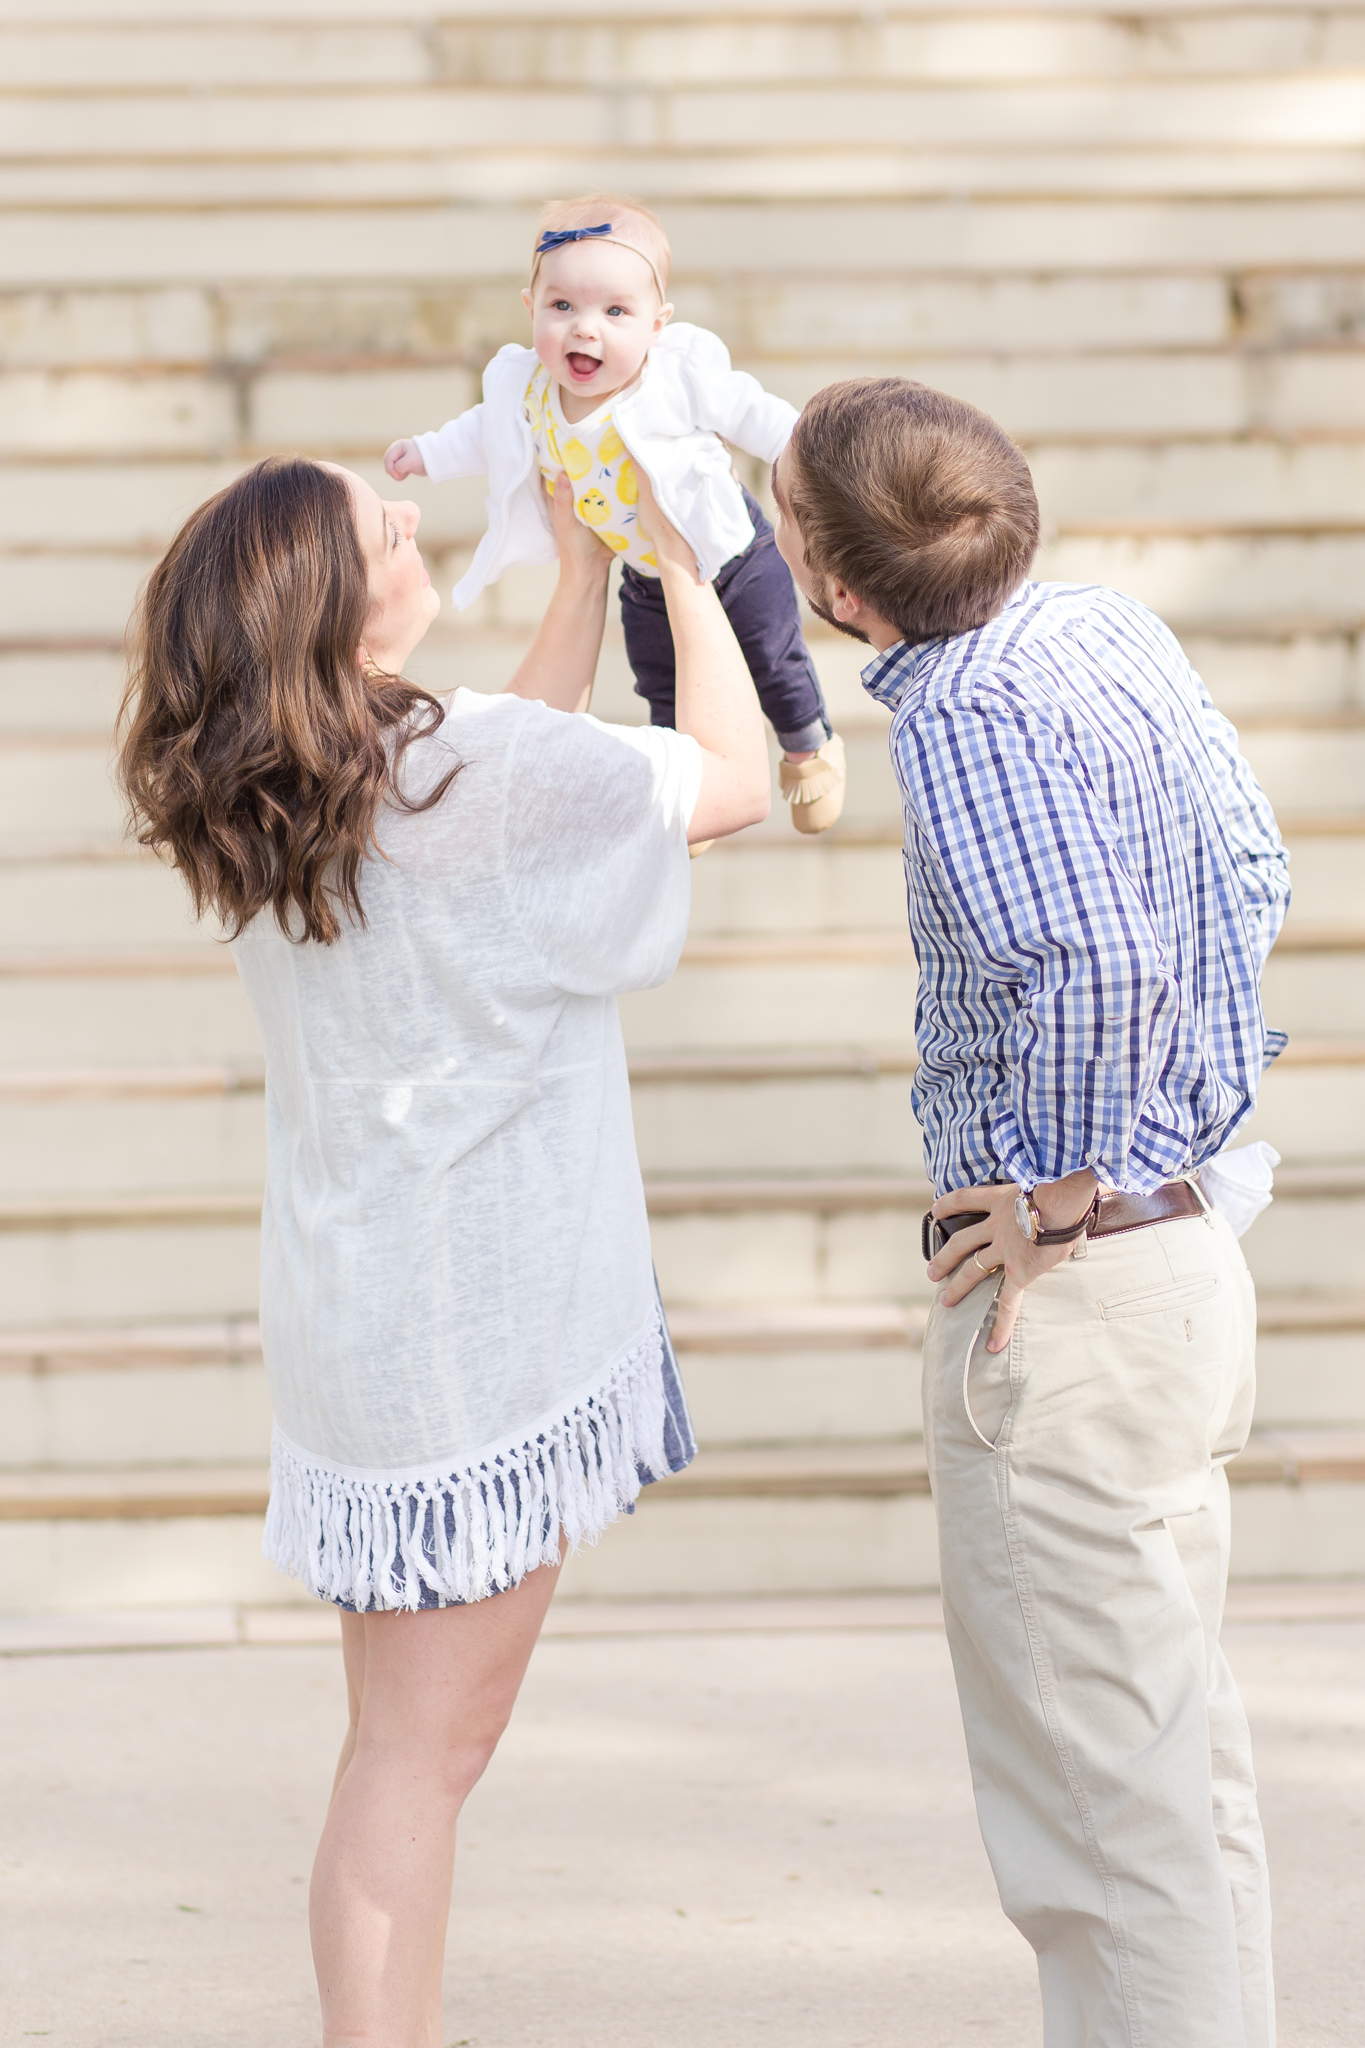 20170409-spartanburg-wofford-college-family-photos-with-baby-5.jpg